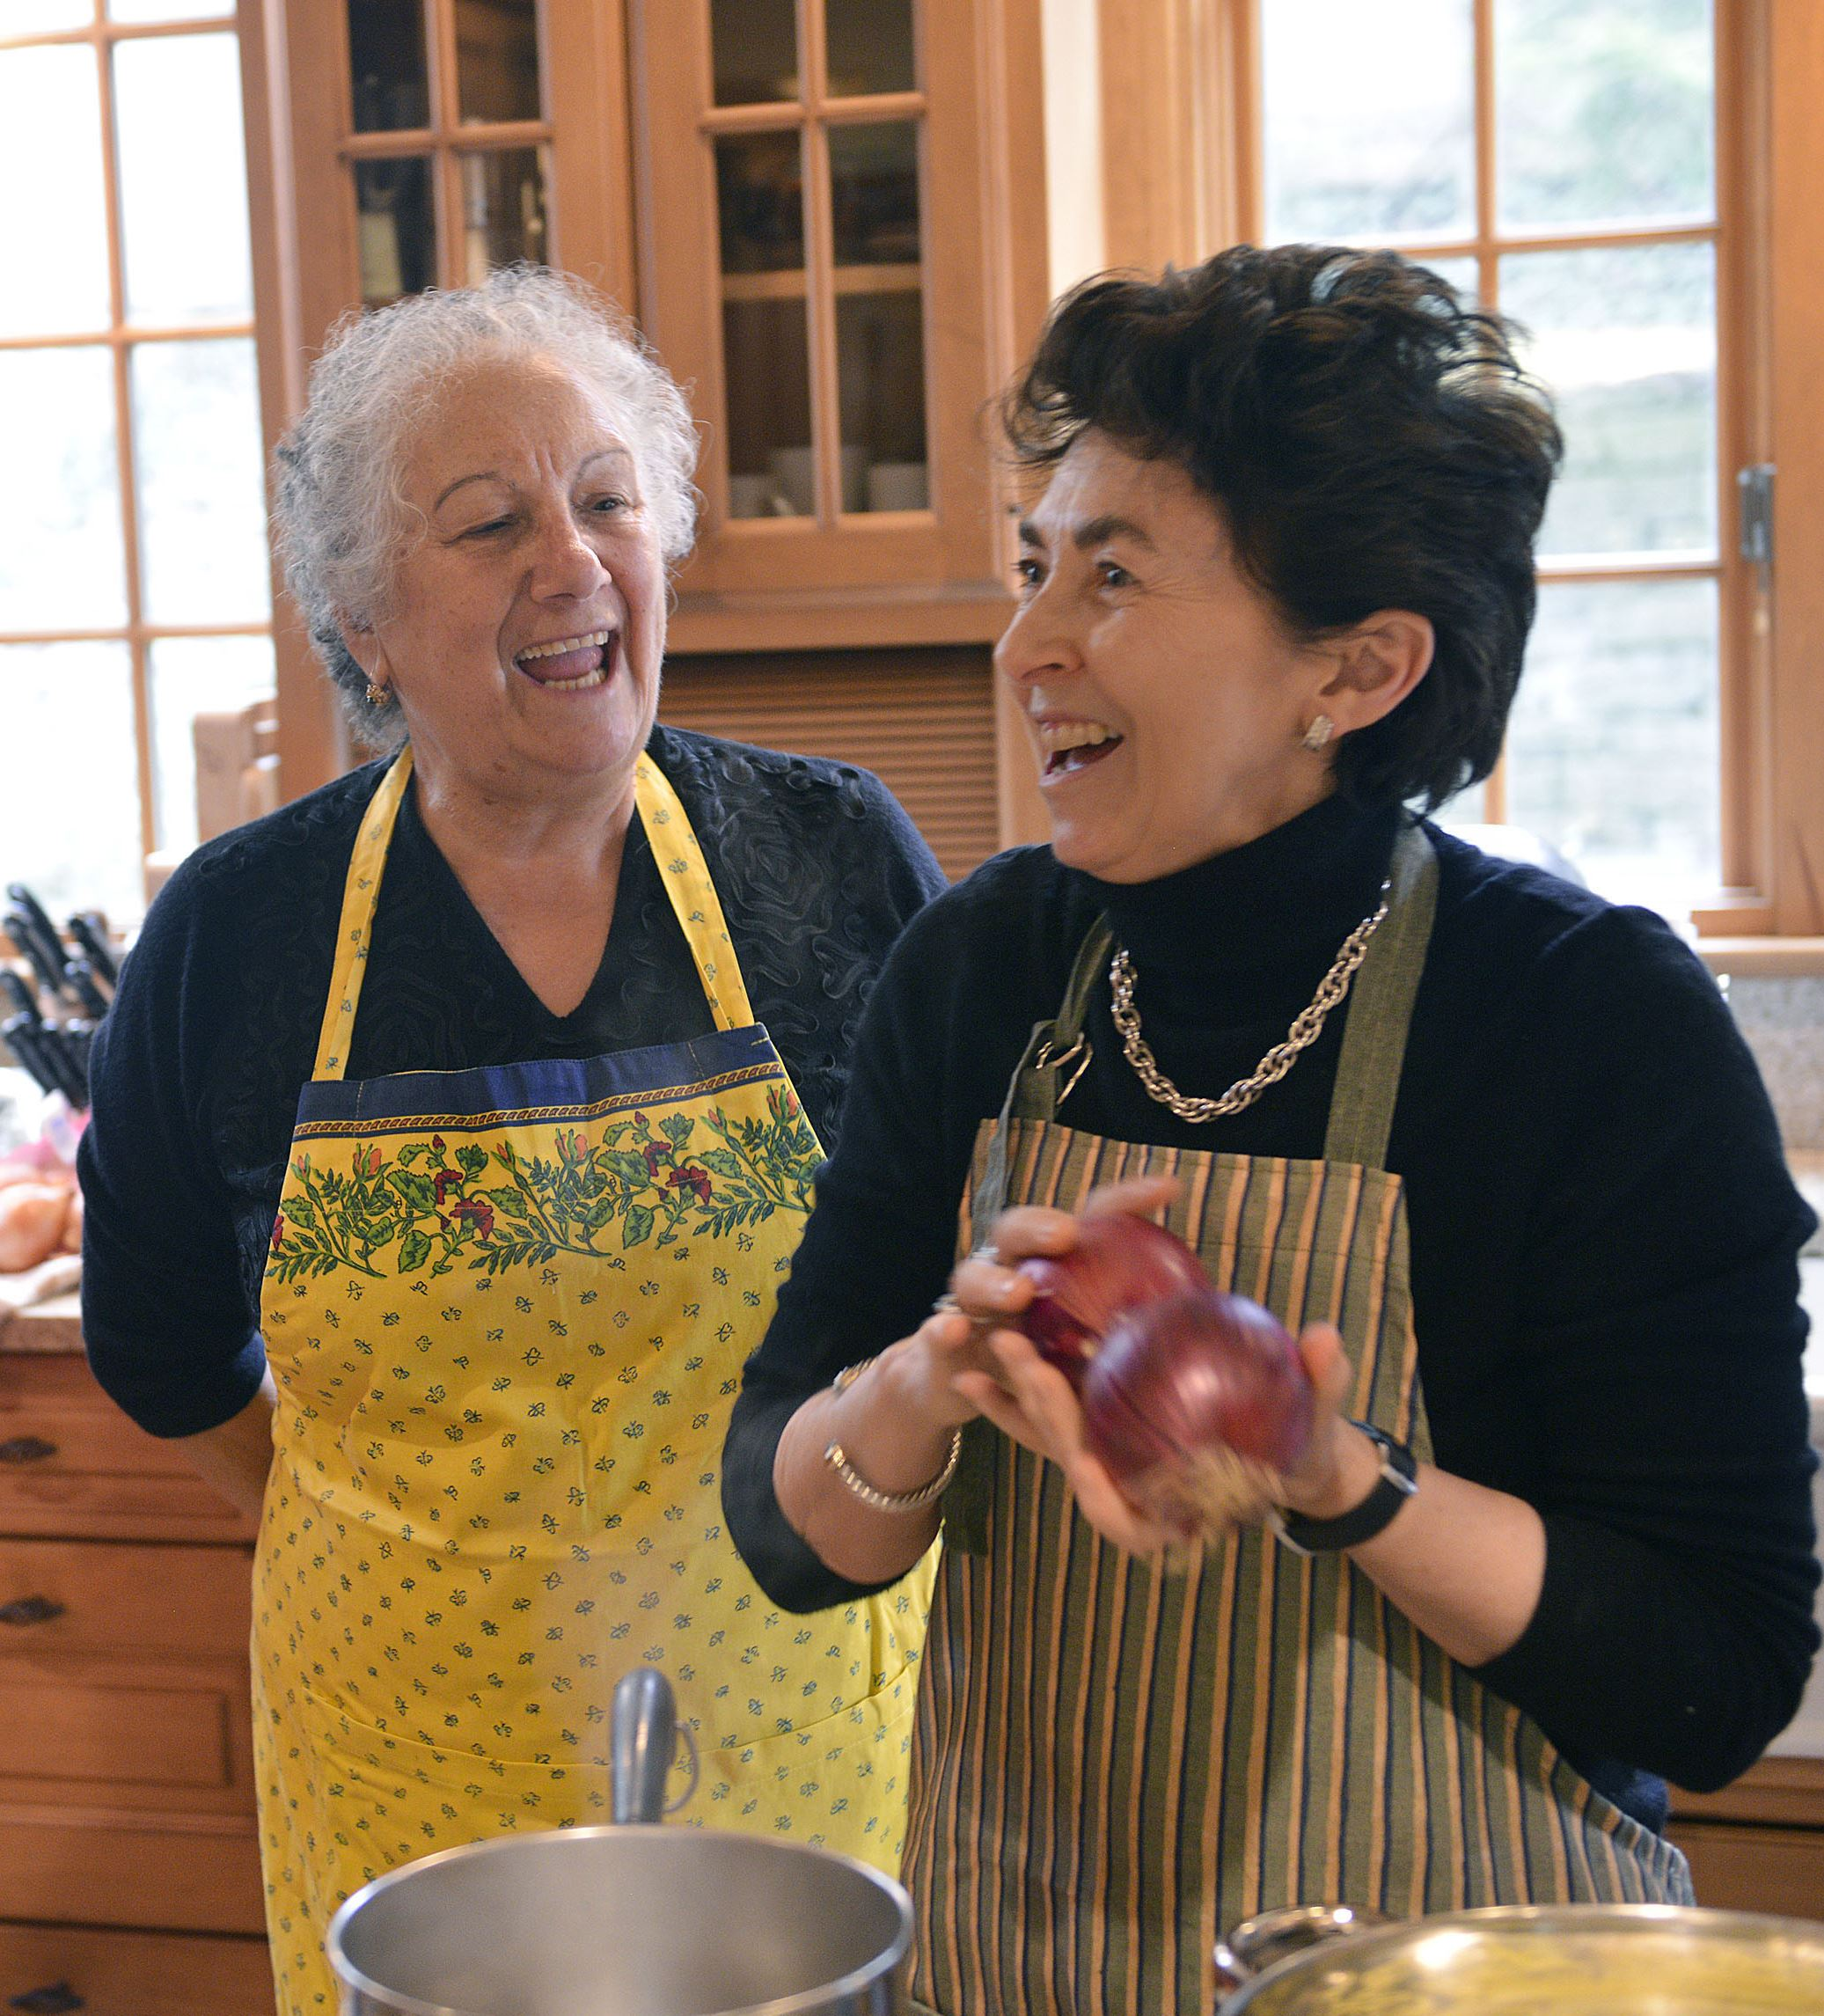 20150423lritalianseen09-5 The Duchess Nicoletta Polo Lanza Tomasi, right, a cooking teacher, reacts to a remark by Sina Fato, mother of the session's host, Miki Fato, as onions are selected for a rustic country potato salad.